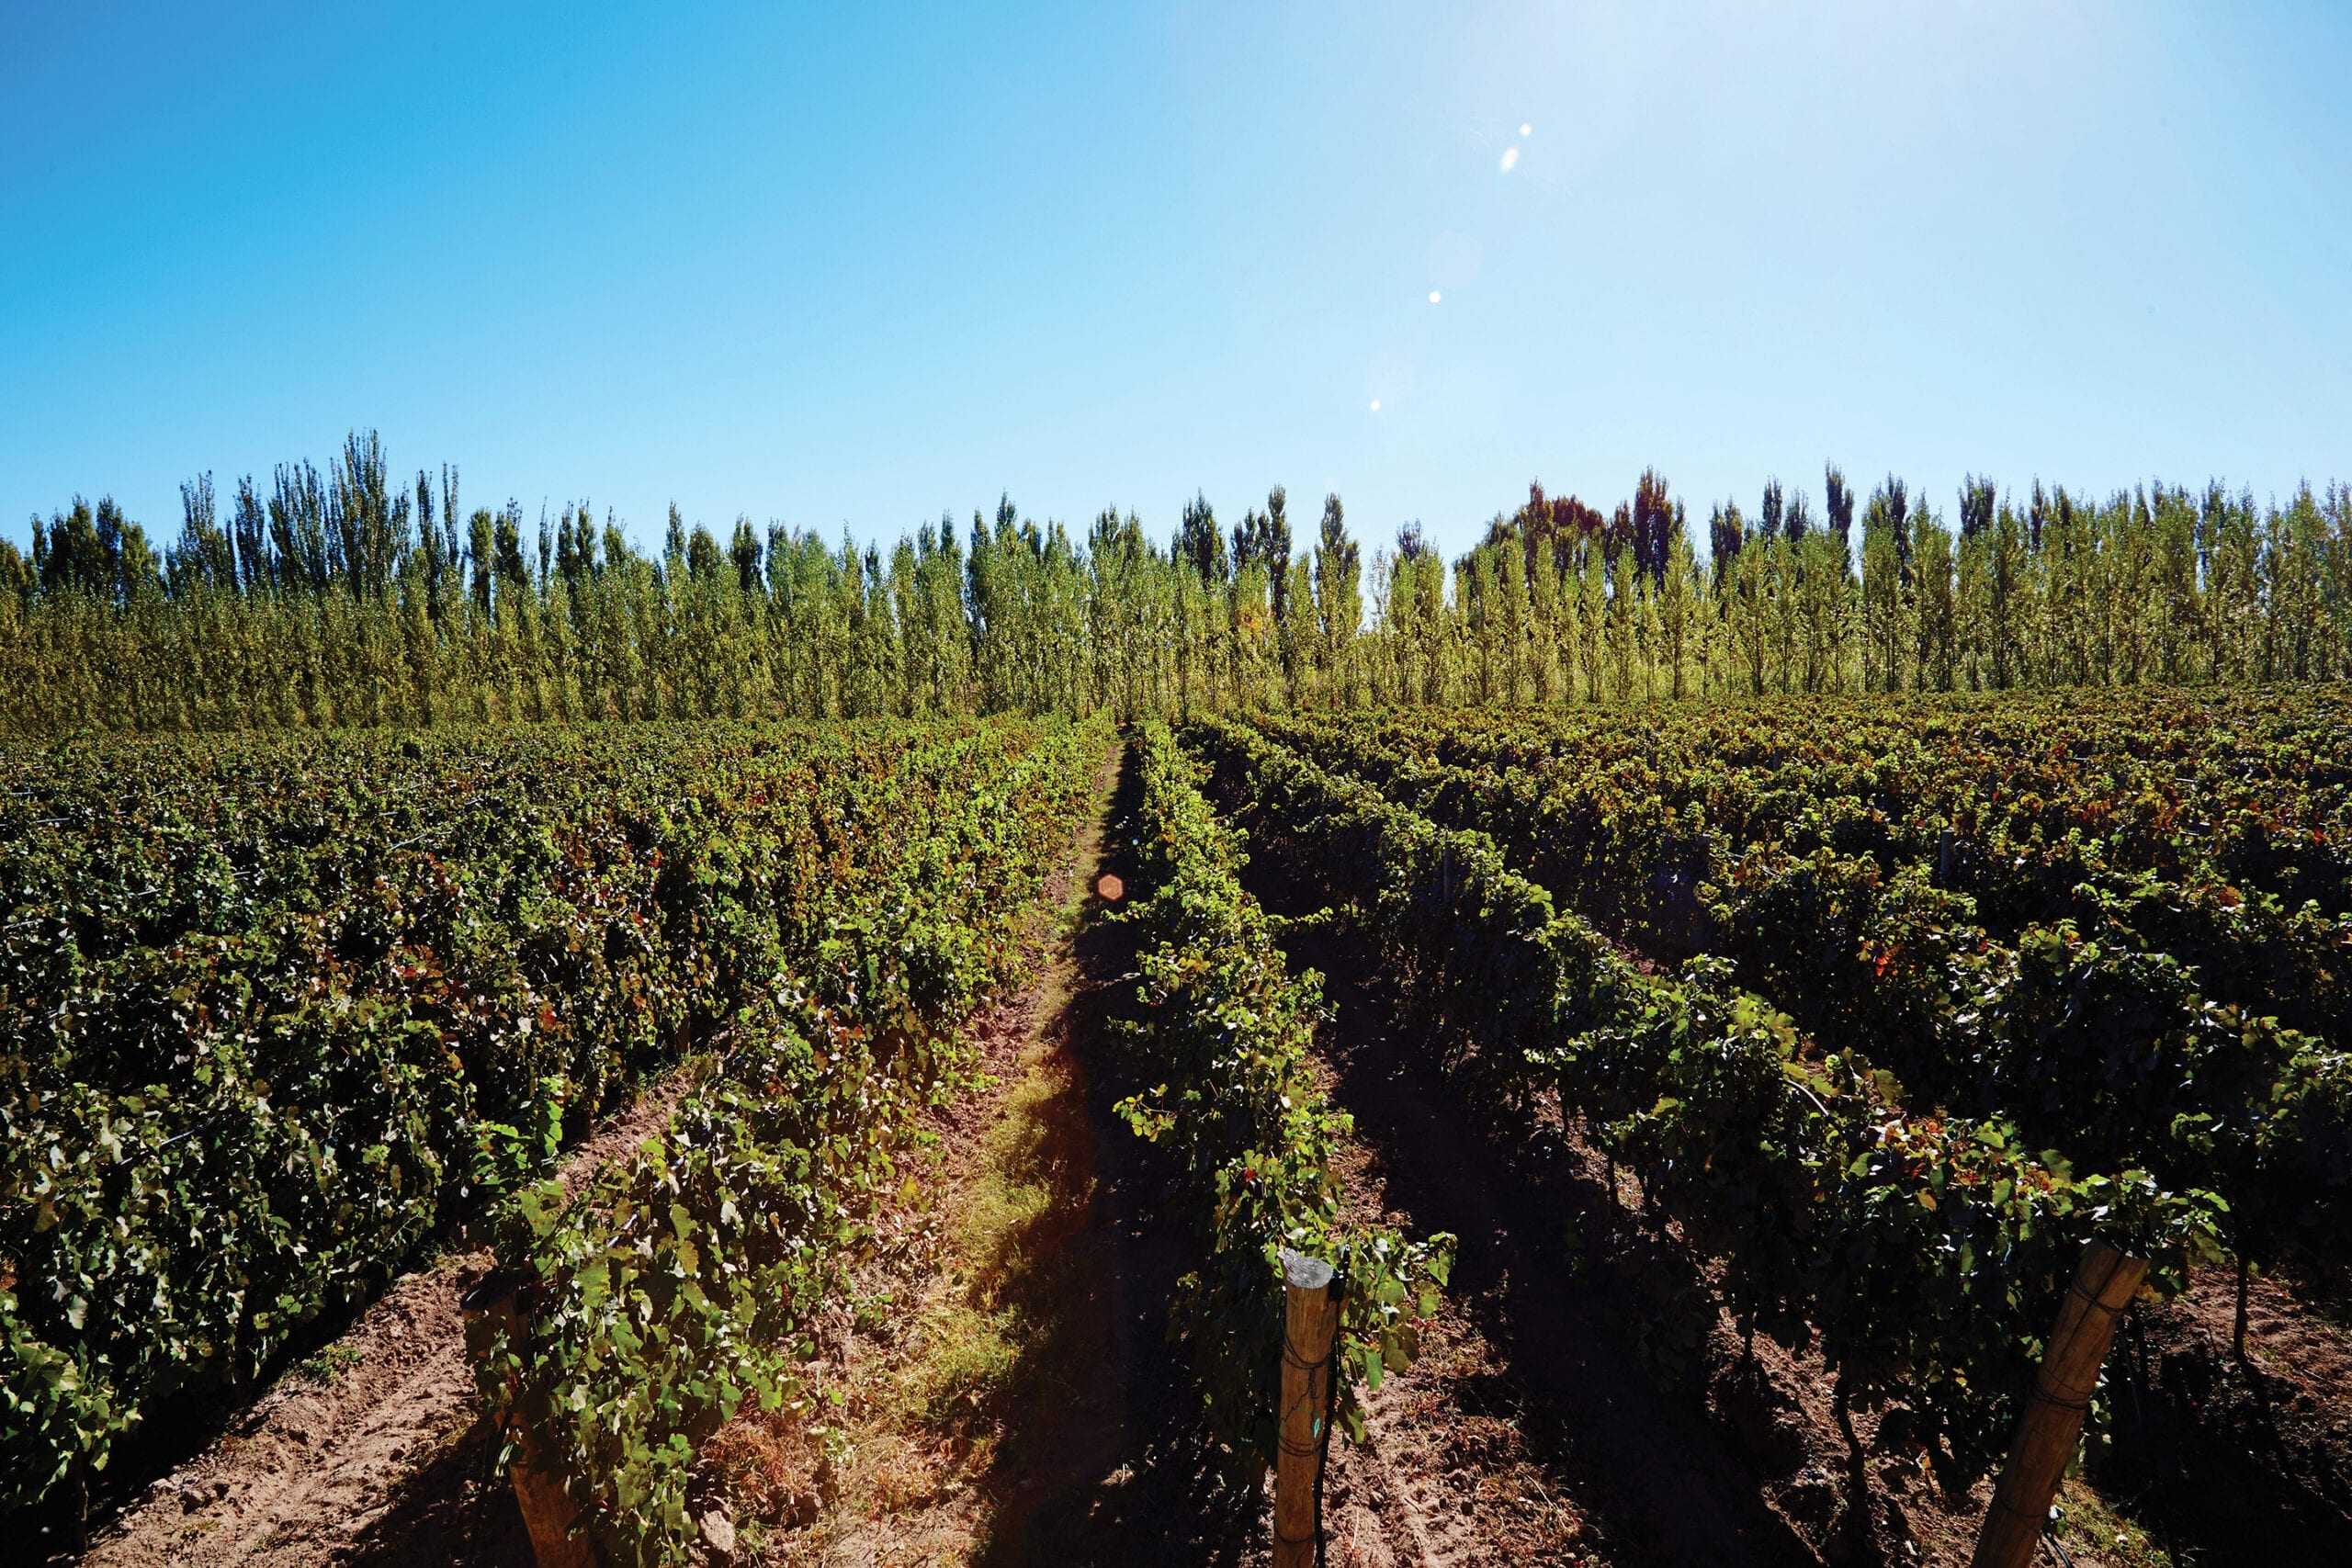 Chacra vineyards in Argentina